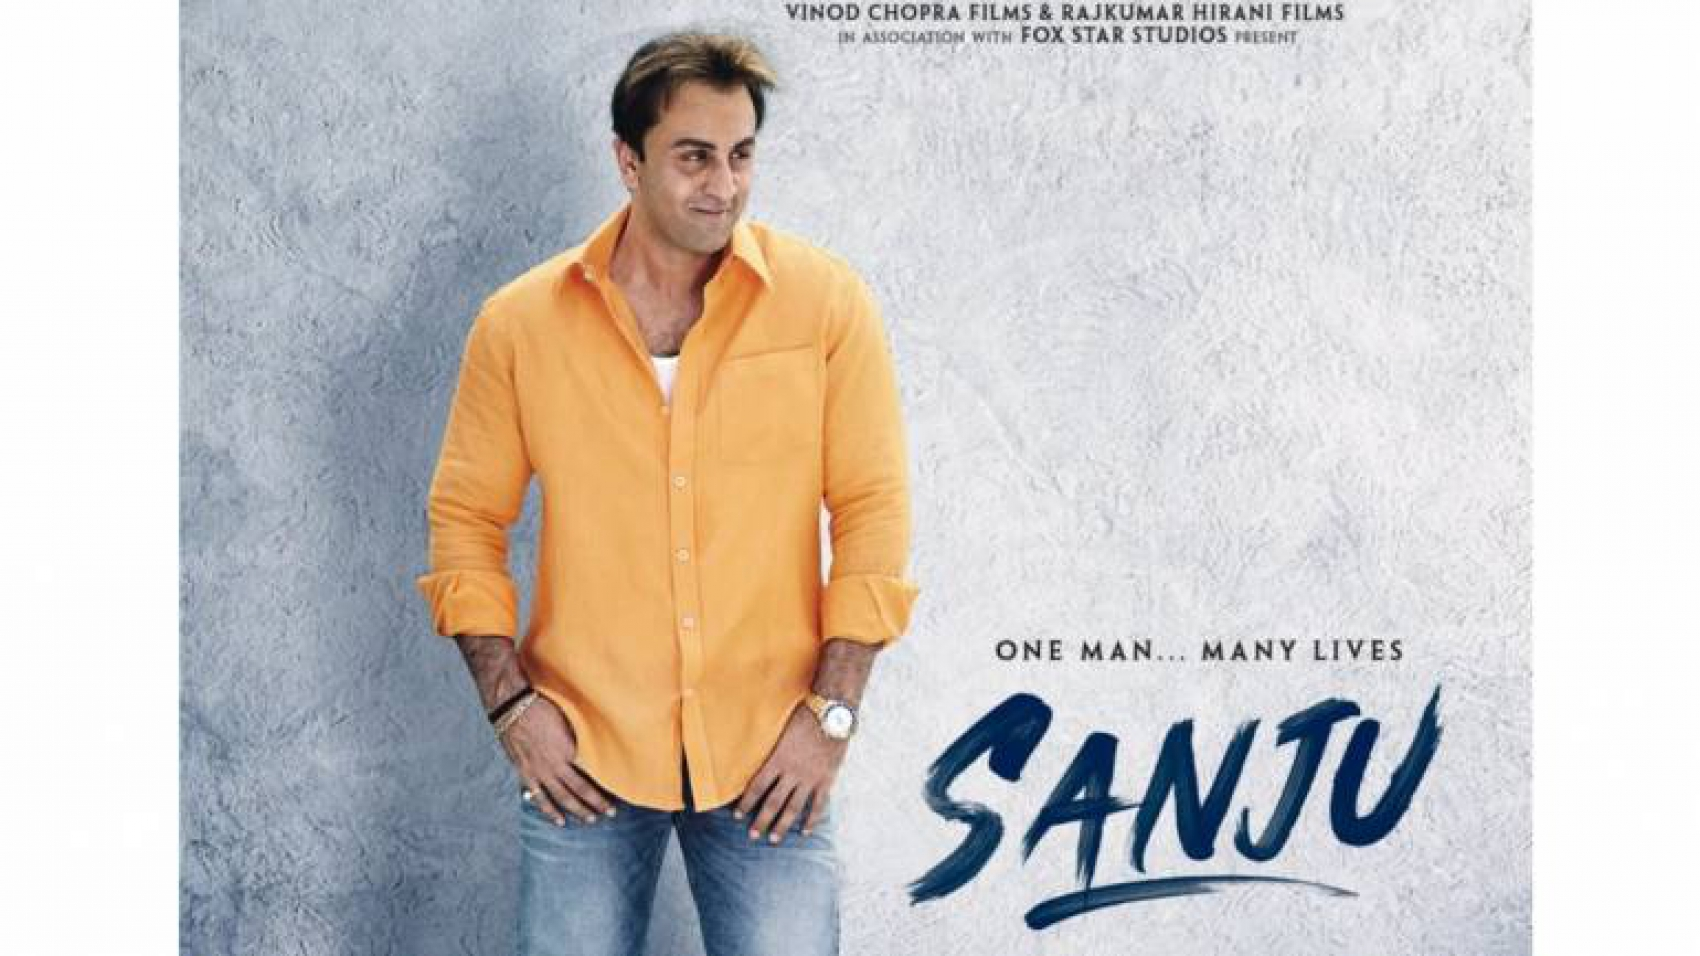 Sanju - a Cautionary Tale for Different Stages of Life